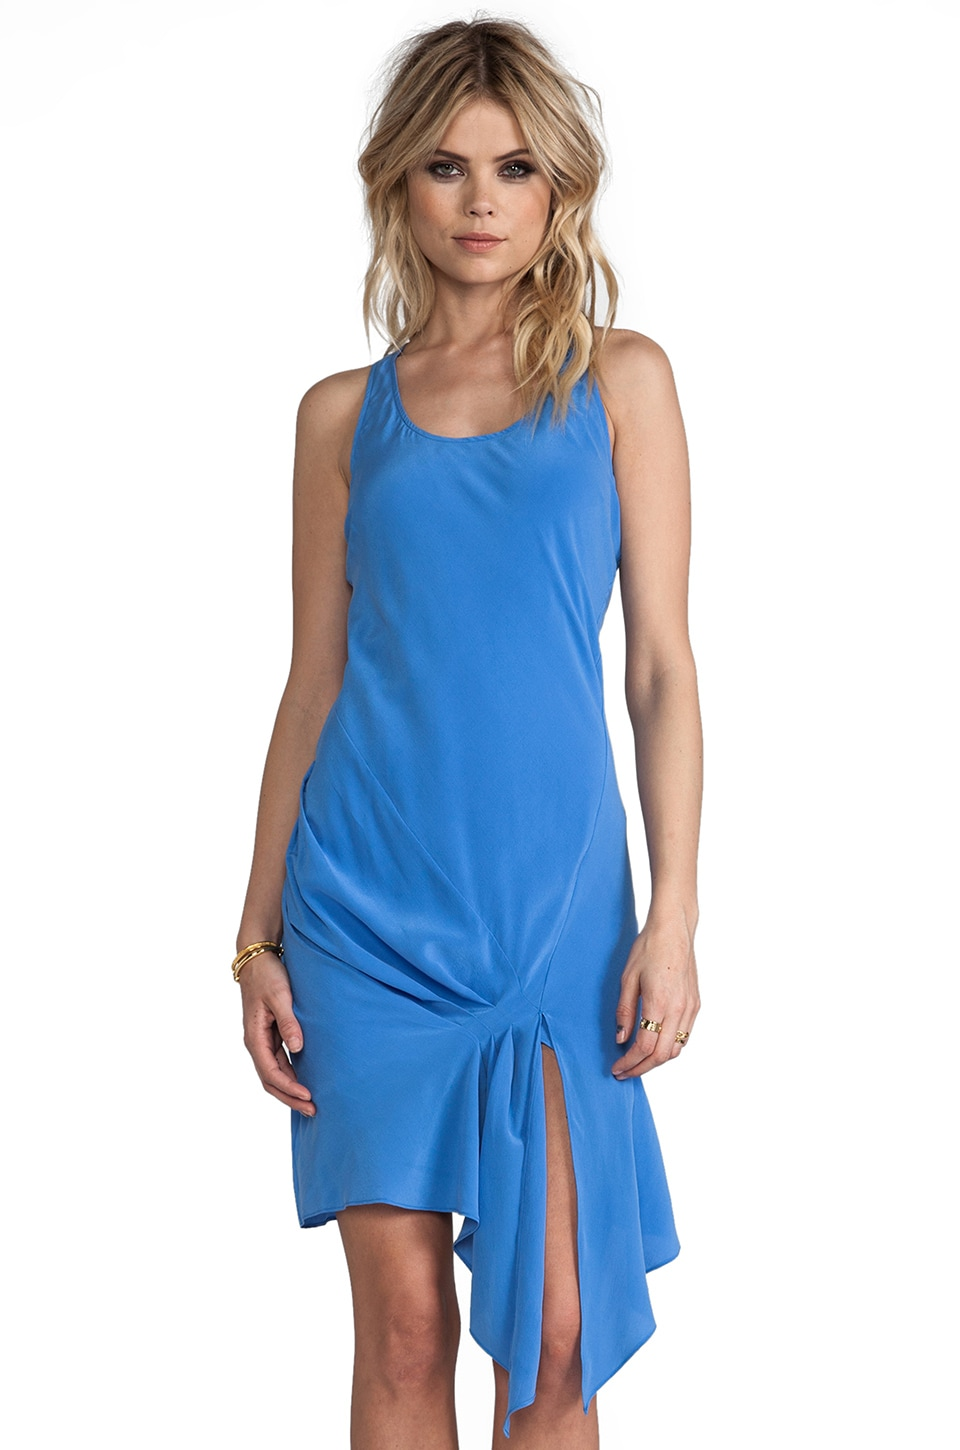 Rebecca Minkoff Topez Dress in Flax